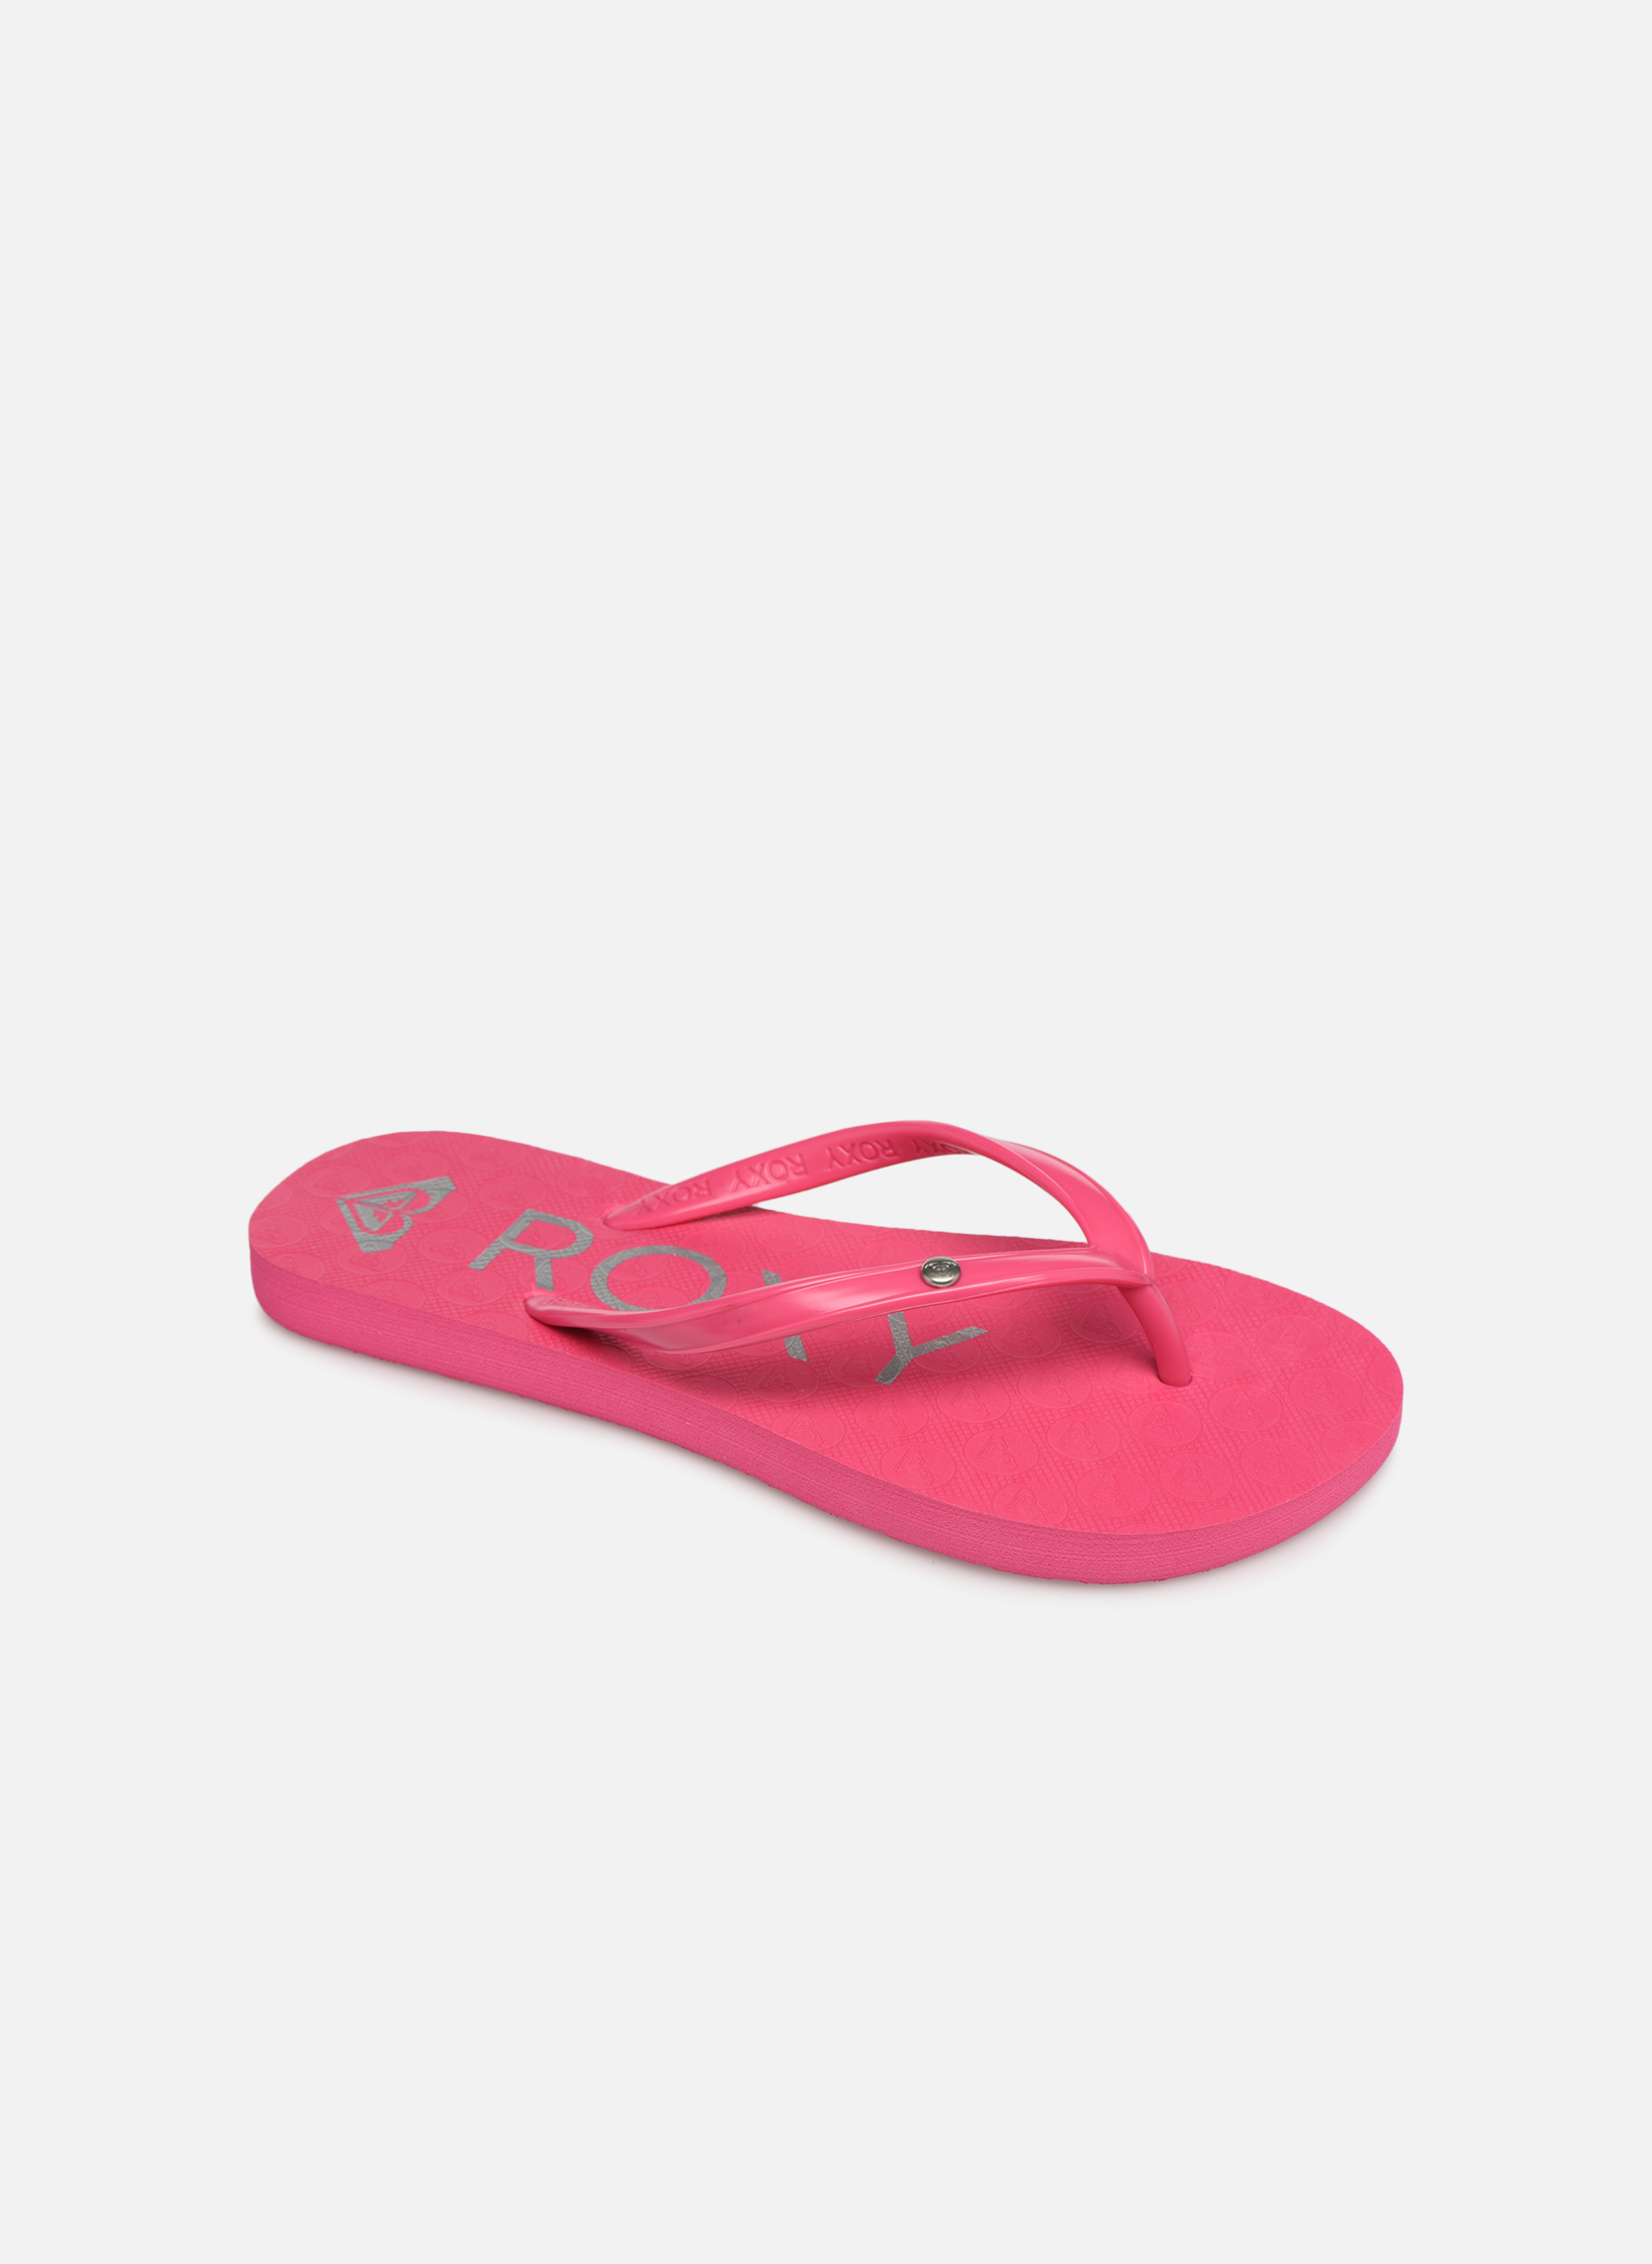 Slippers Roxy Roze